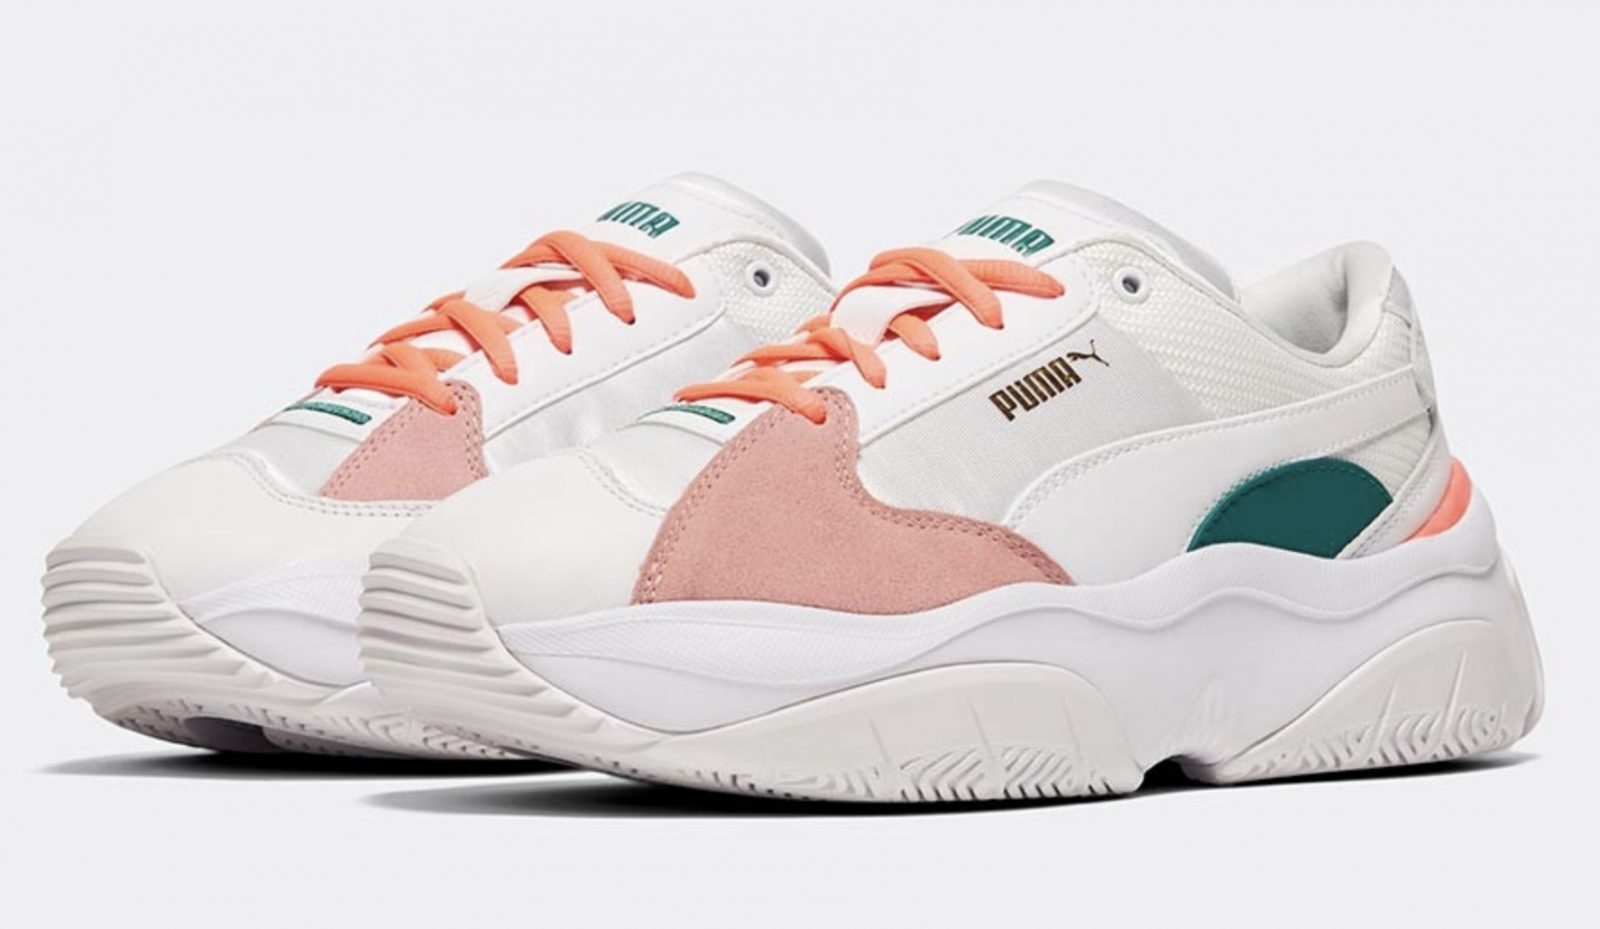 Puma Storm Y Metallic White Pink Green